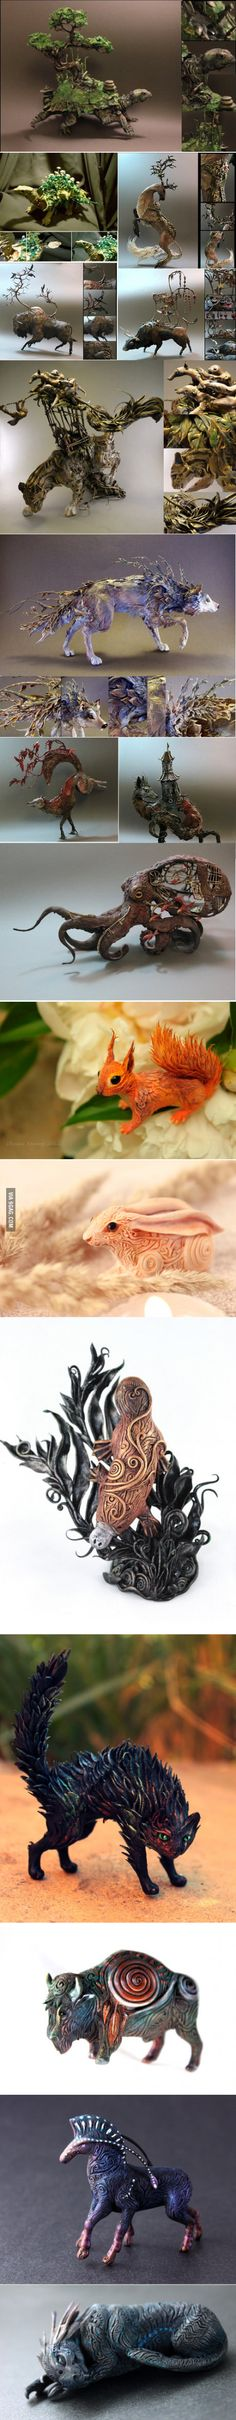 Handmade animal art pieces